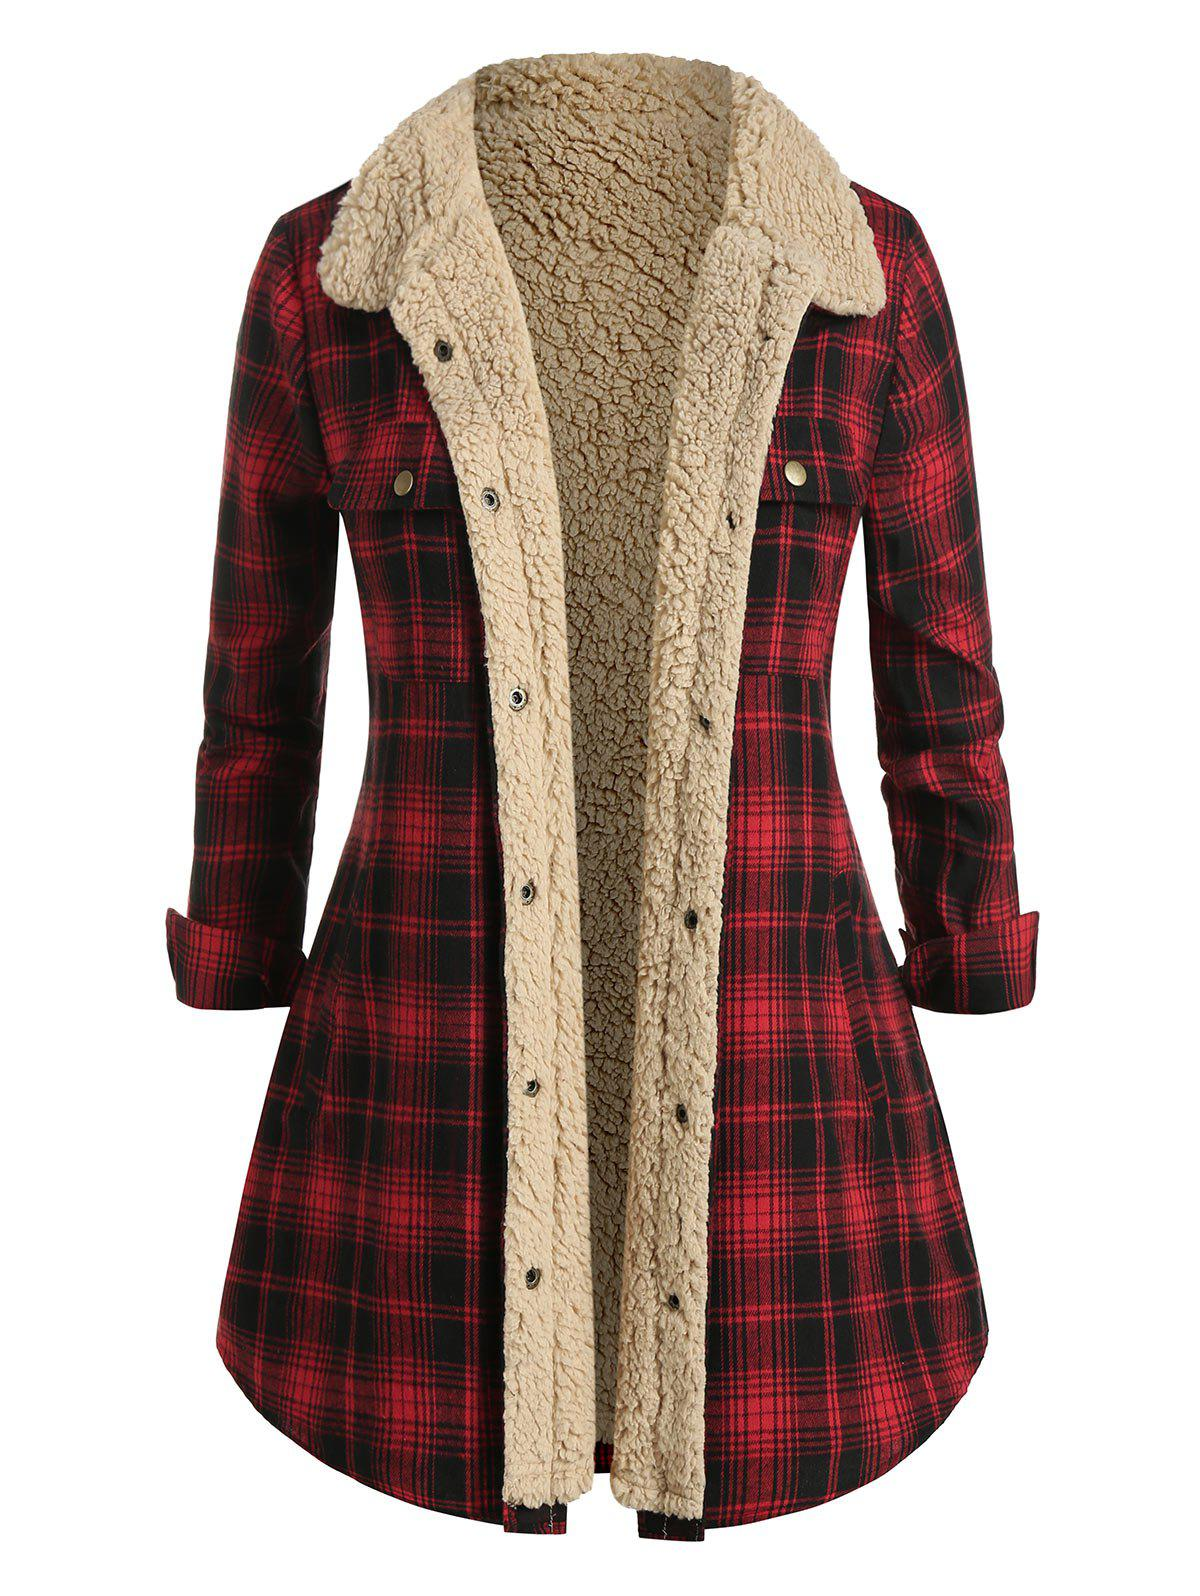 Plus Size Plaid Flannel Teddy Lined Tunic Jacket - multicolor 1X